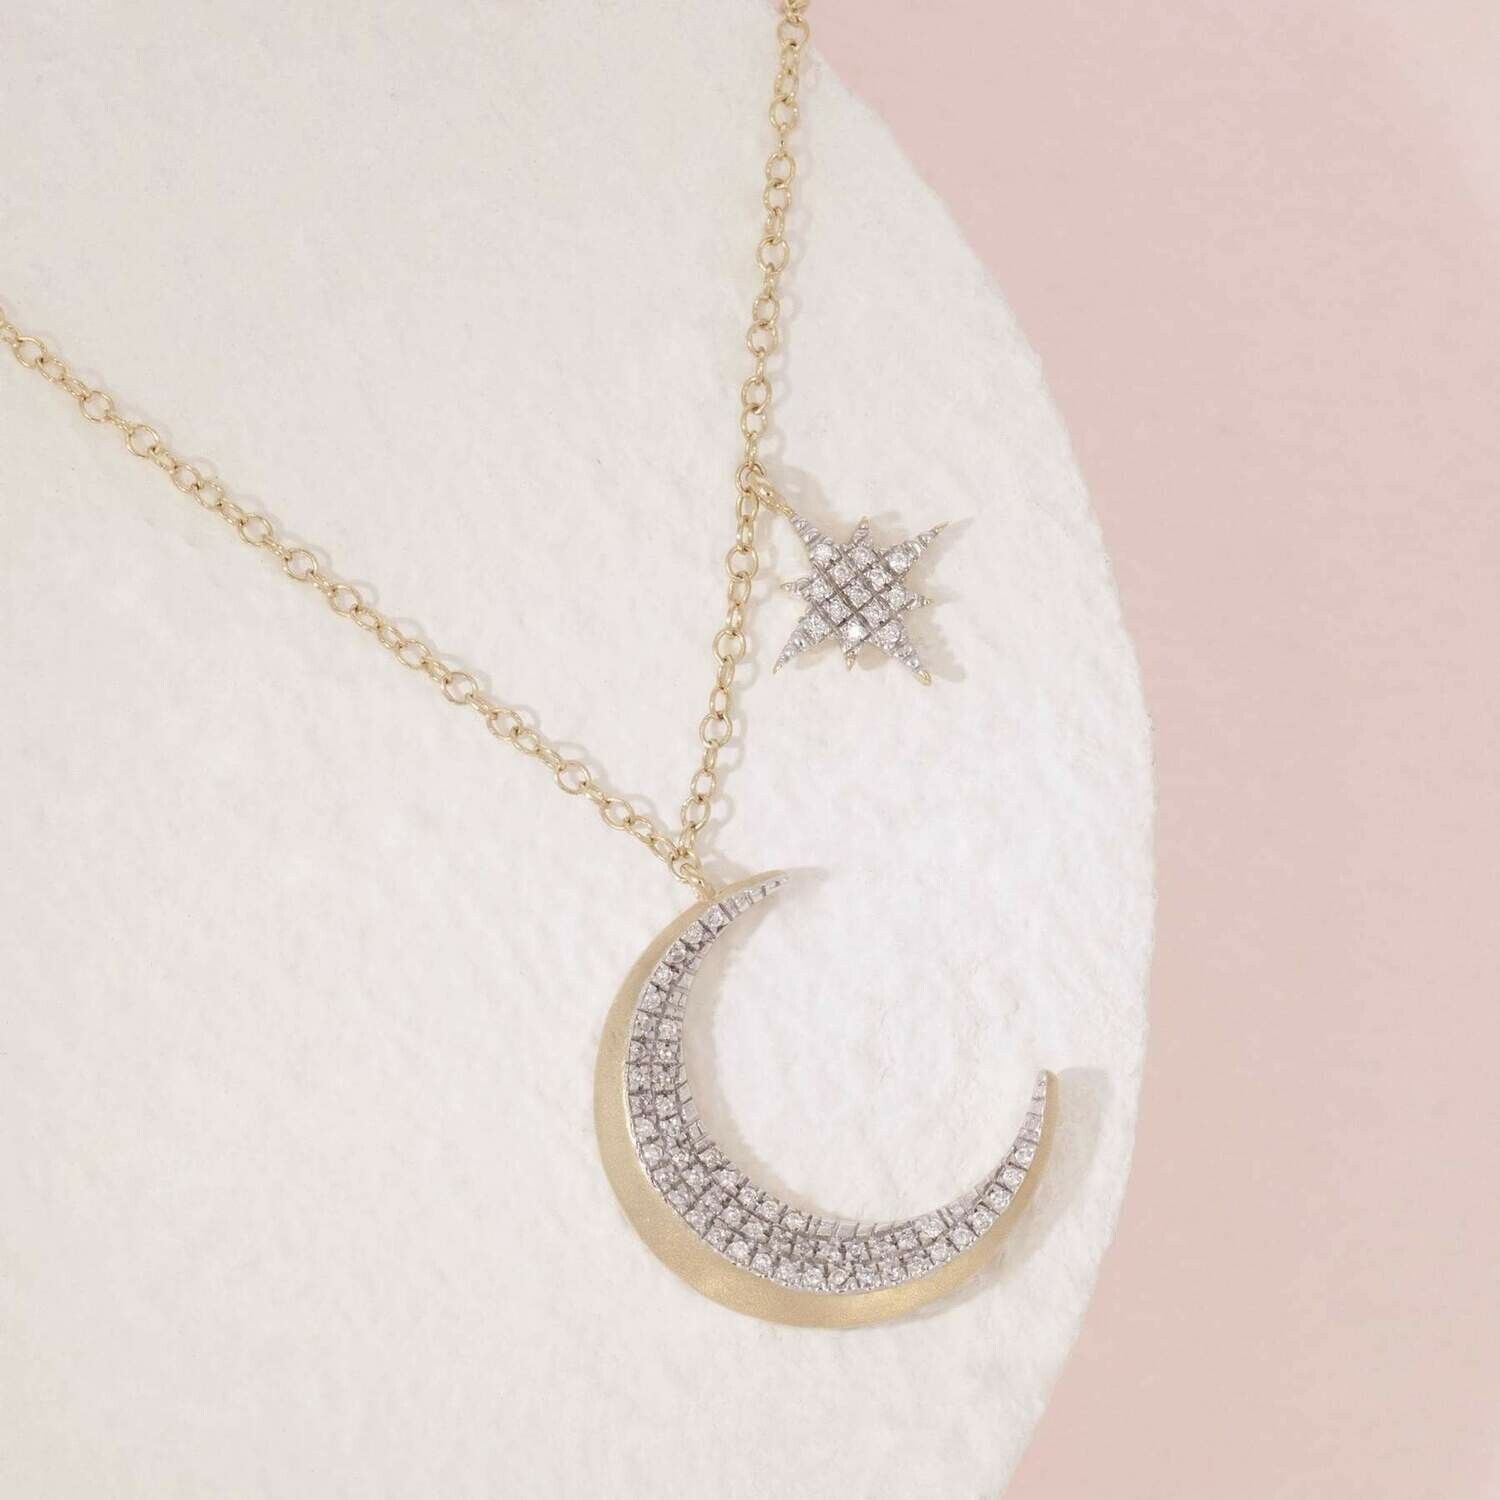 Ella Stein Fly Me To The Moon Necklace (Gold)